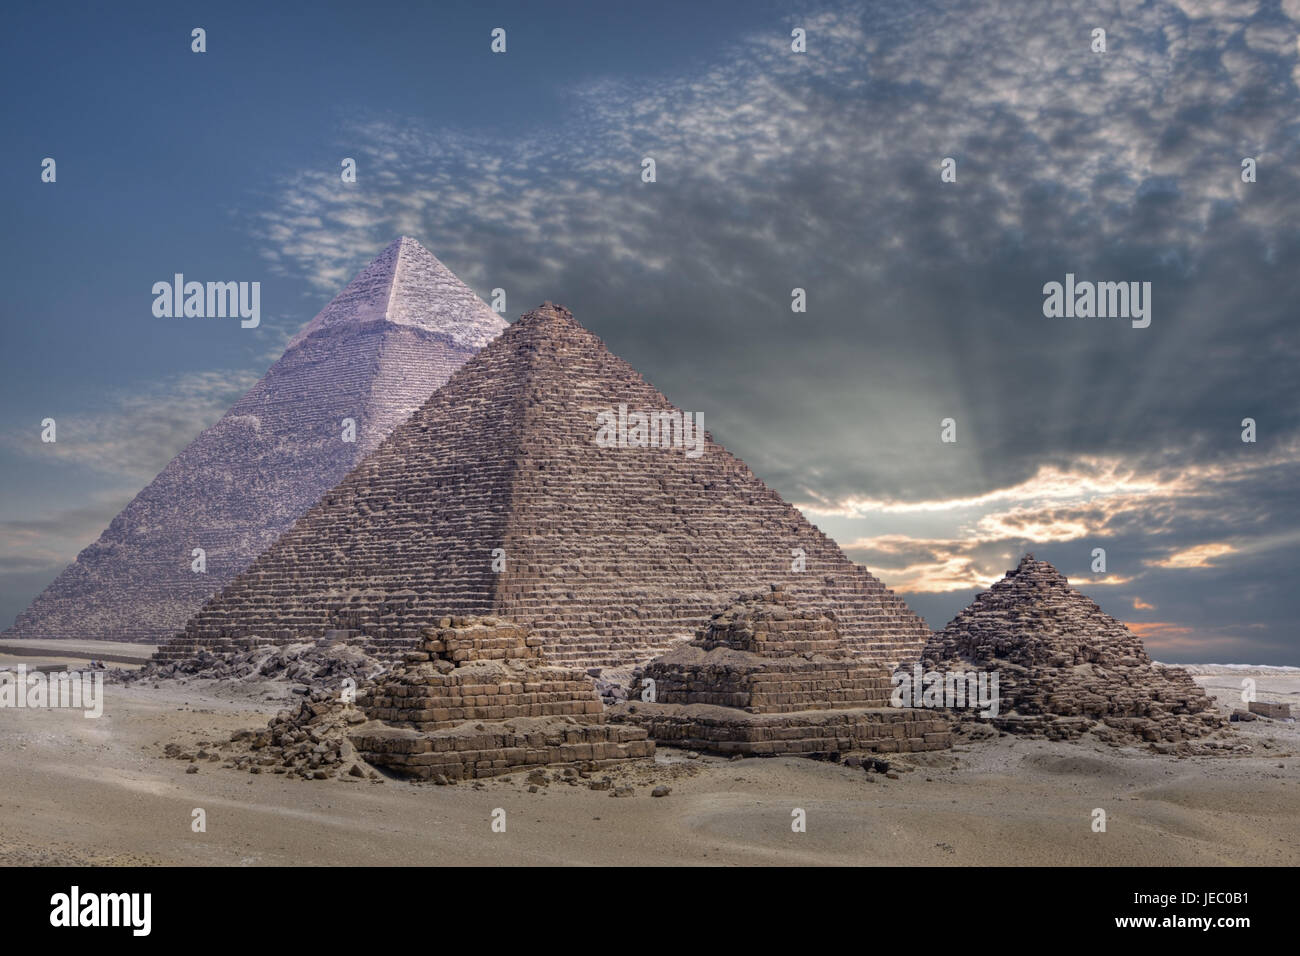 Pyramids of Gizeh, Cairo, Egypt, - Stock Image